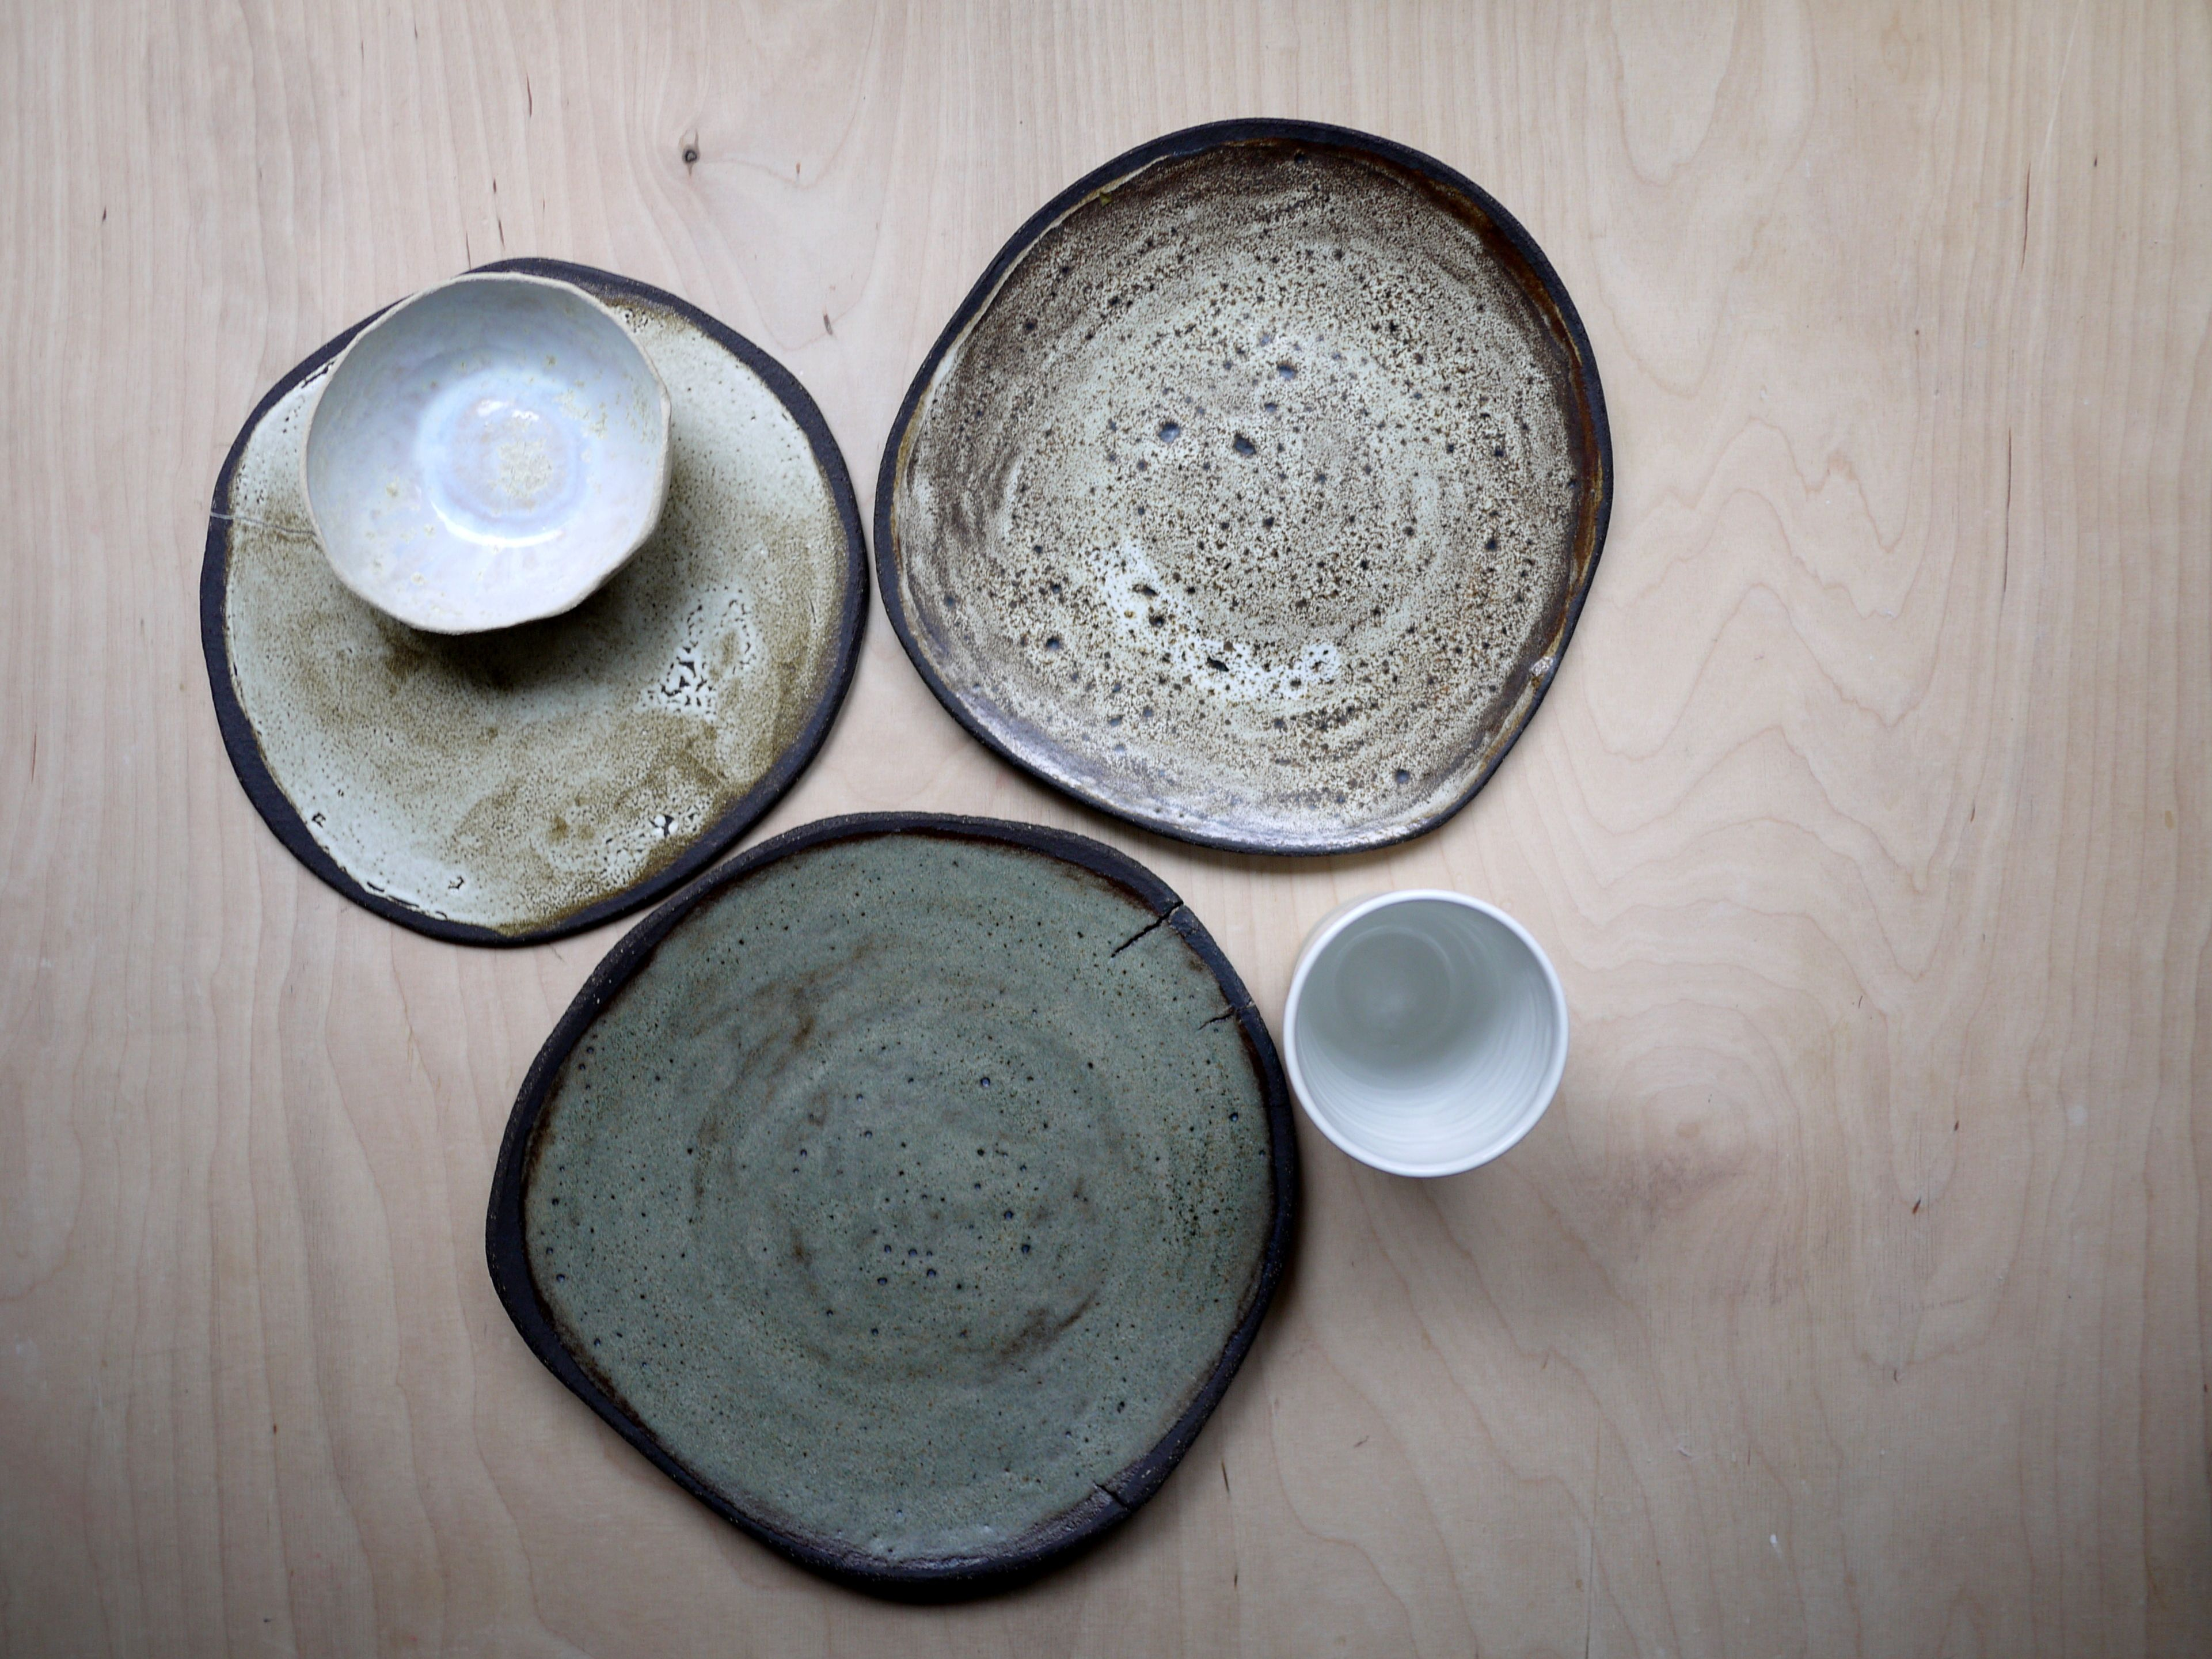 Collection Of Rusty Handmade Ceramic Tableware Plates And Bowls In Off White Grey Tones Ceramic Tableware Handmade Ceramics Plates Plates And Bowls